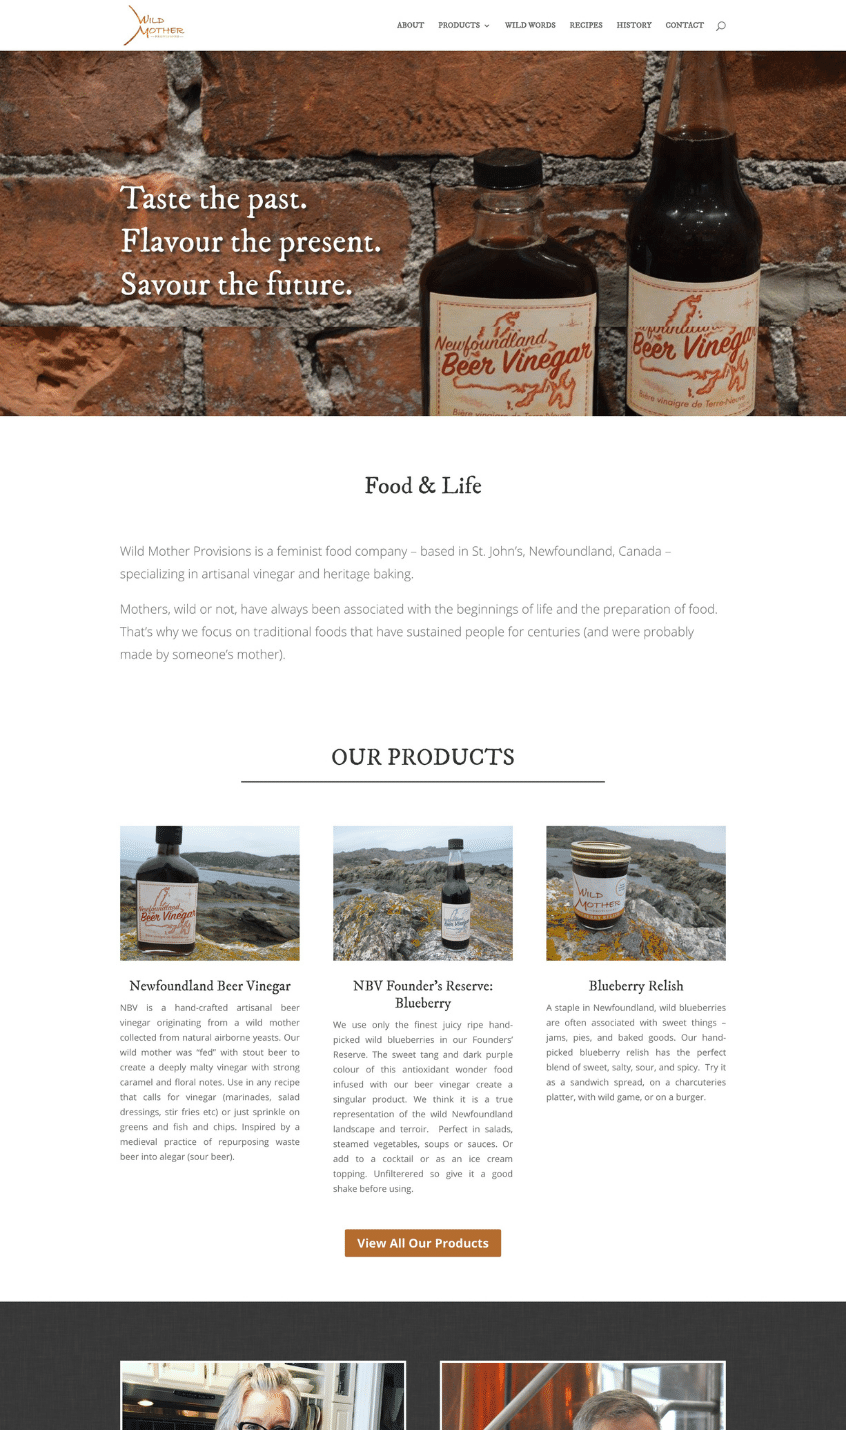 Screenshot of Wild Mother Provisions Website designed by Good Cheer Web Design in Newfoundland